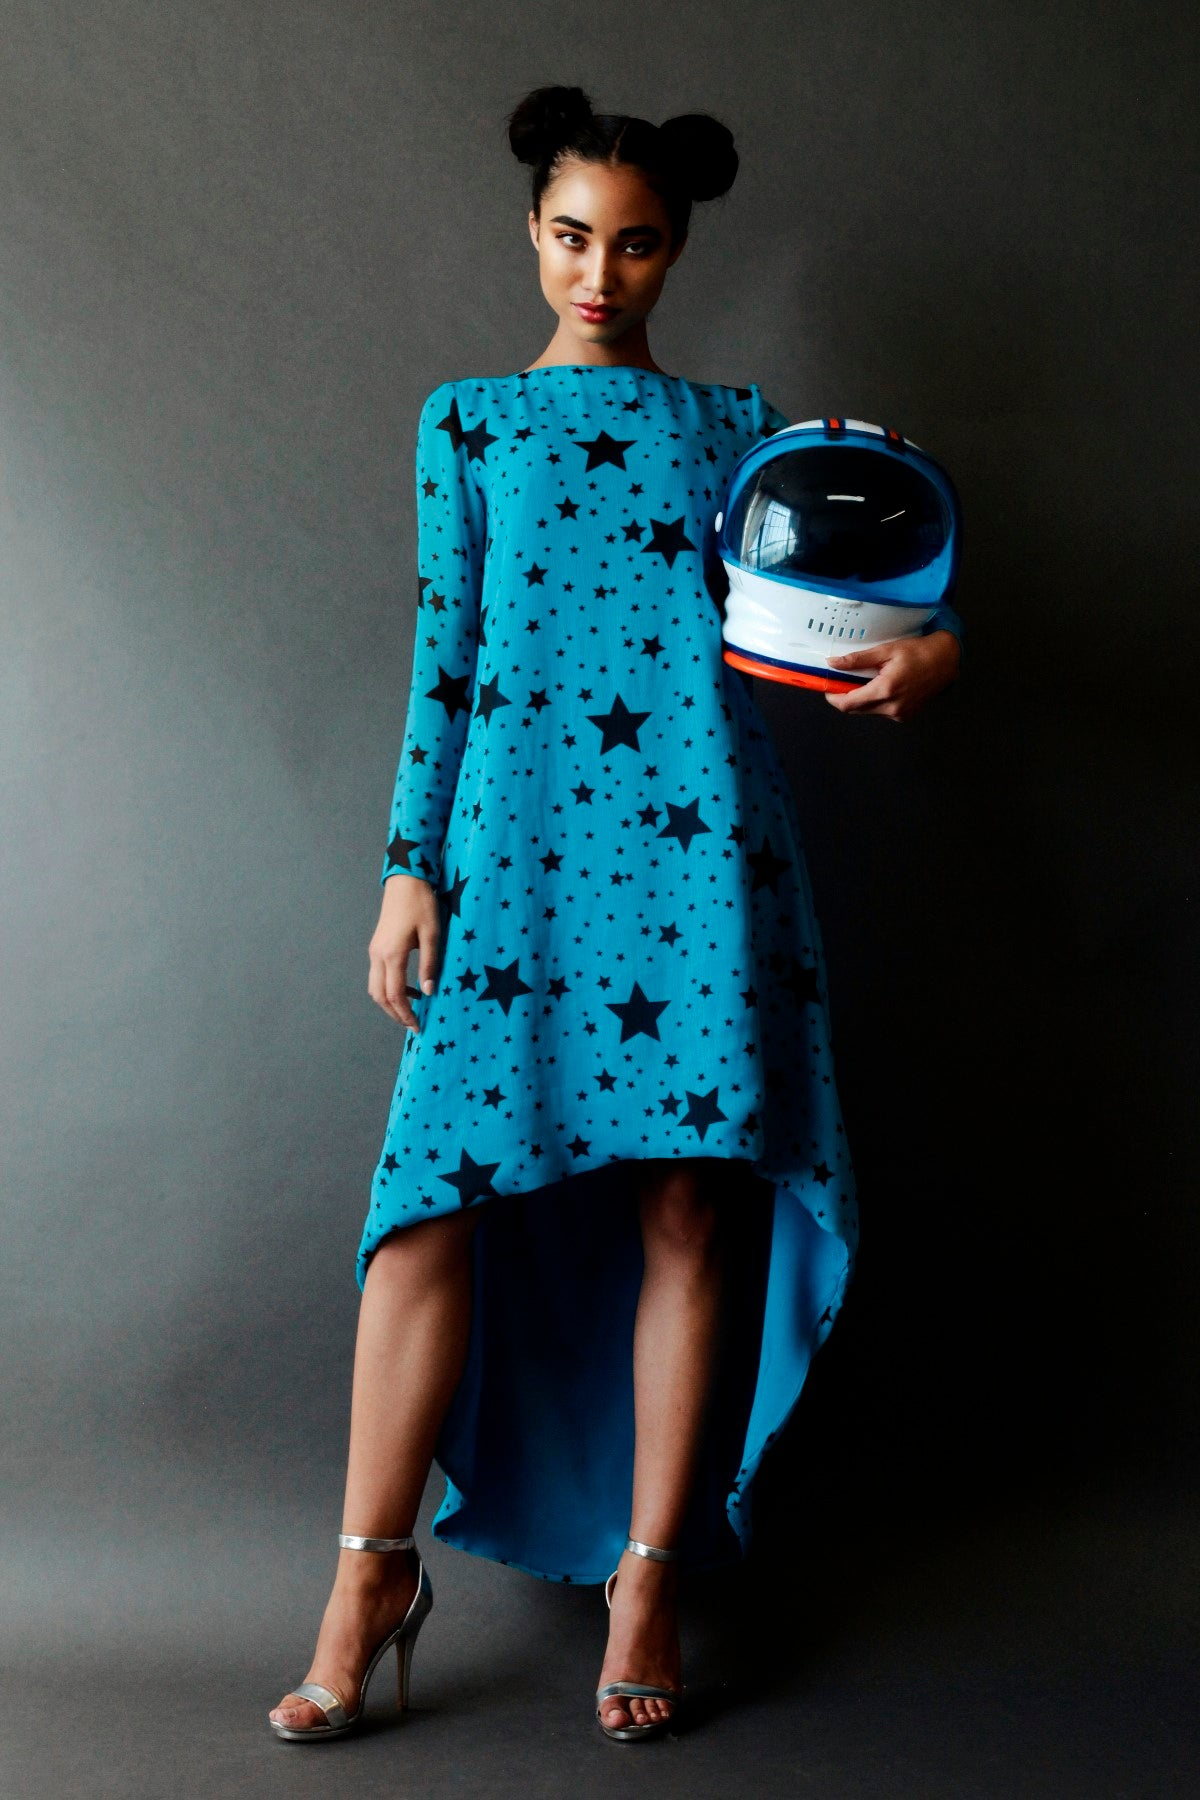 Stargazer Dress